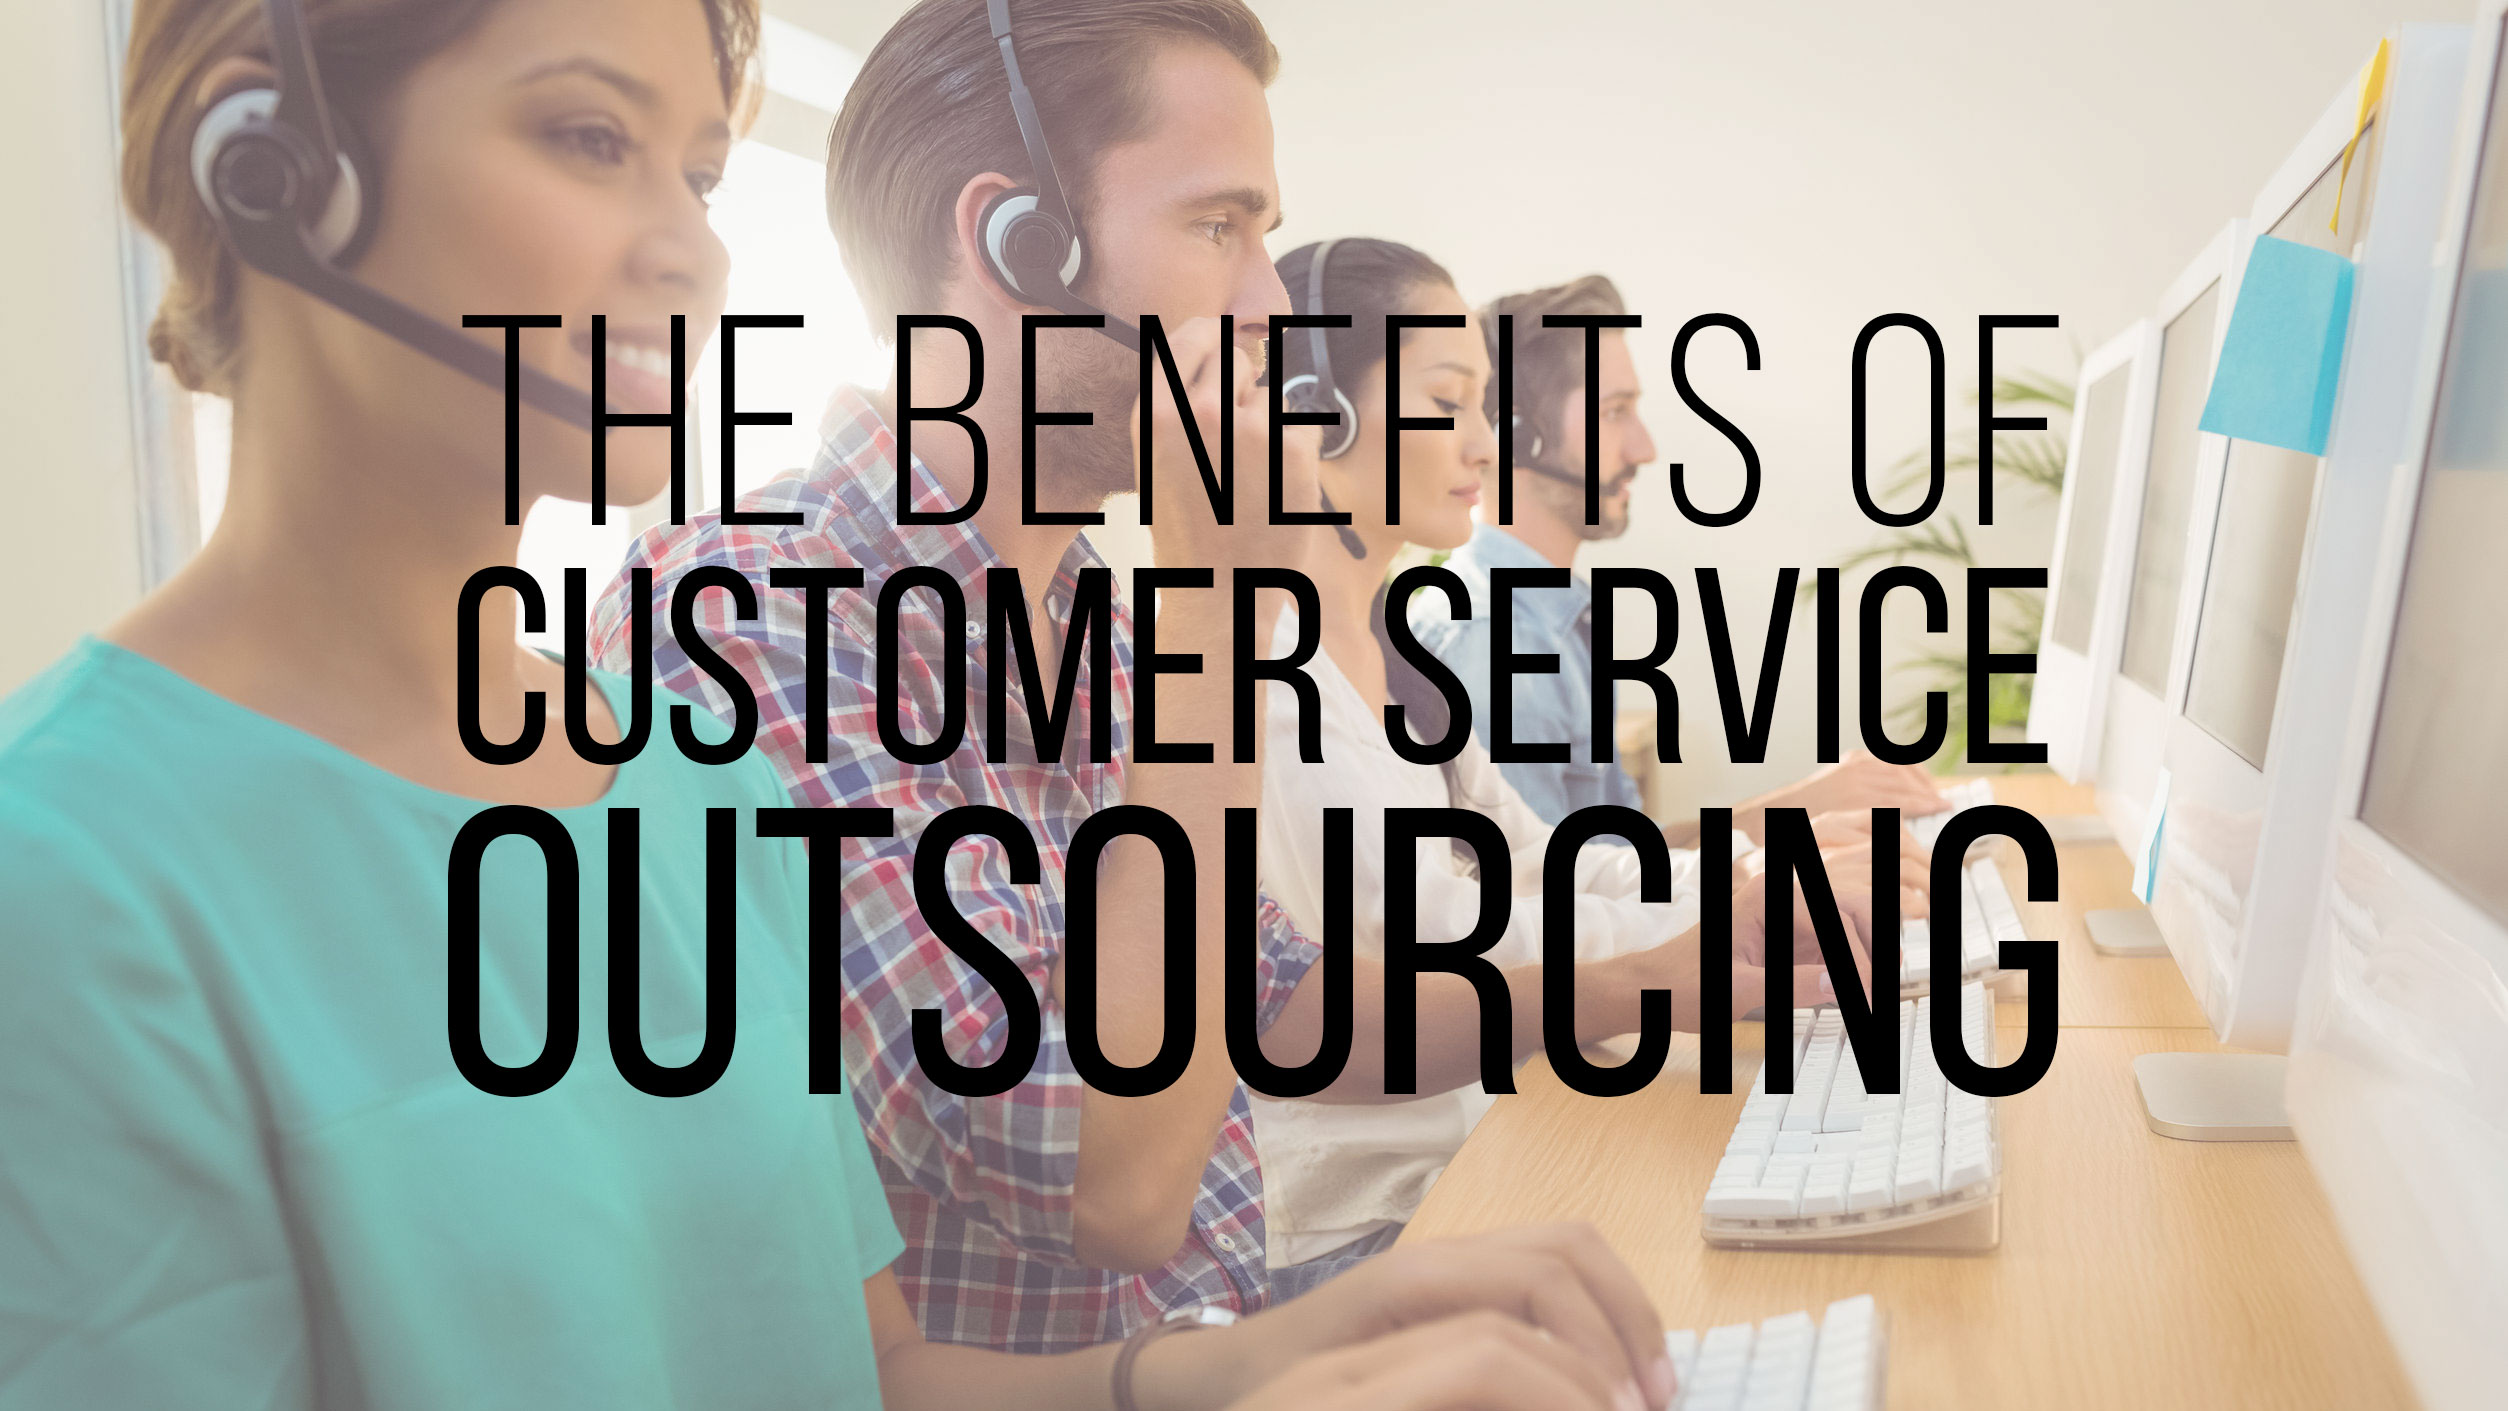 Professional Outsourcing Solutions